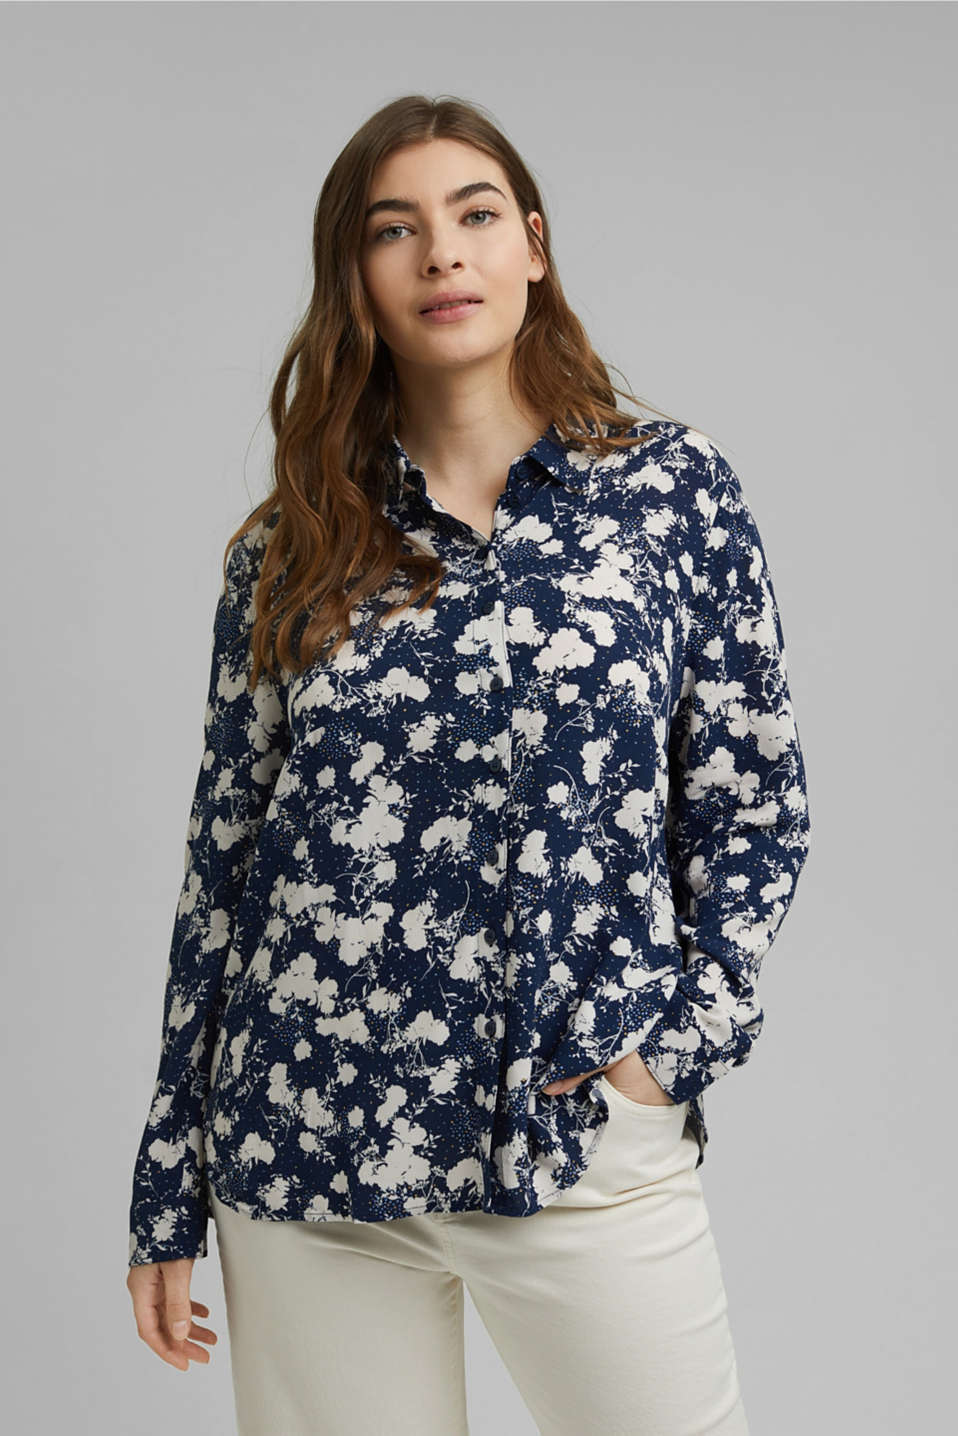 Esprit - CURVY shirt blouse with a floral print